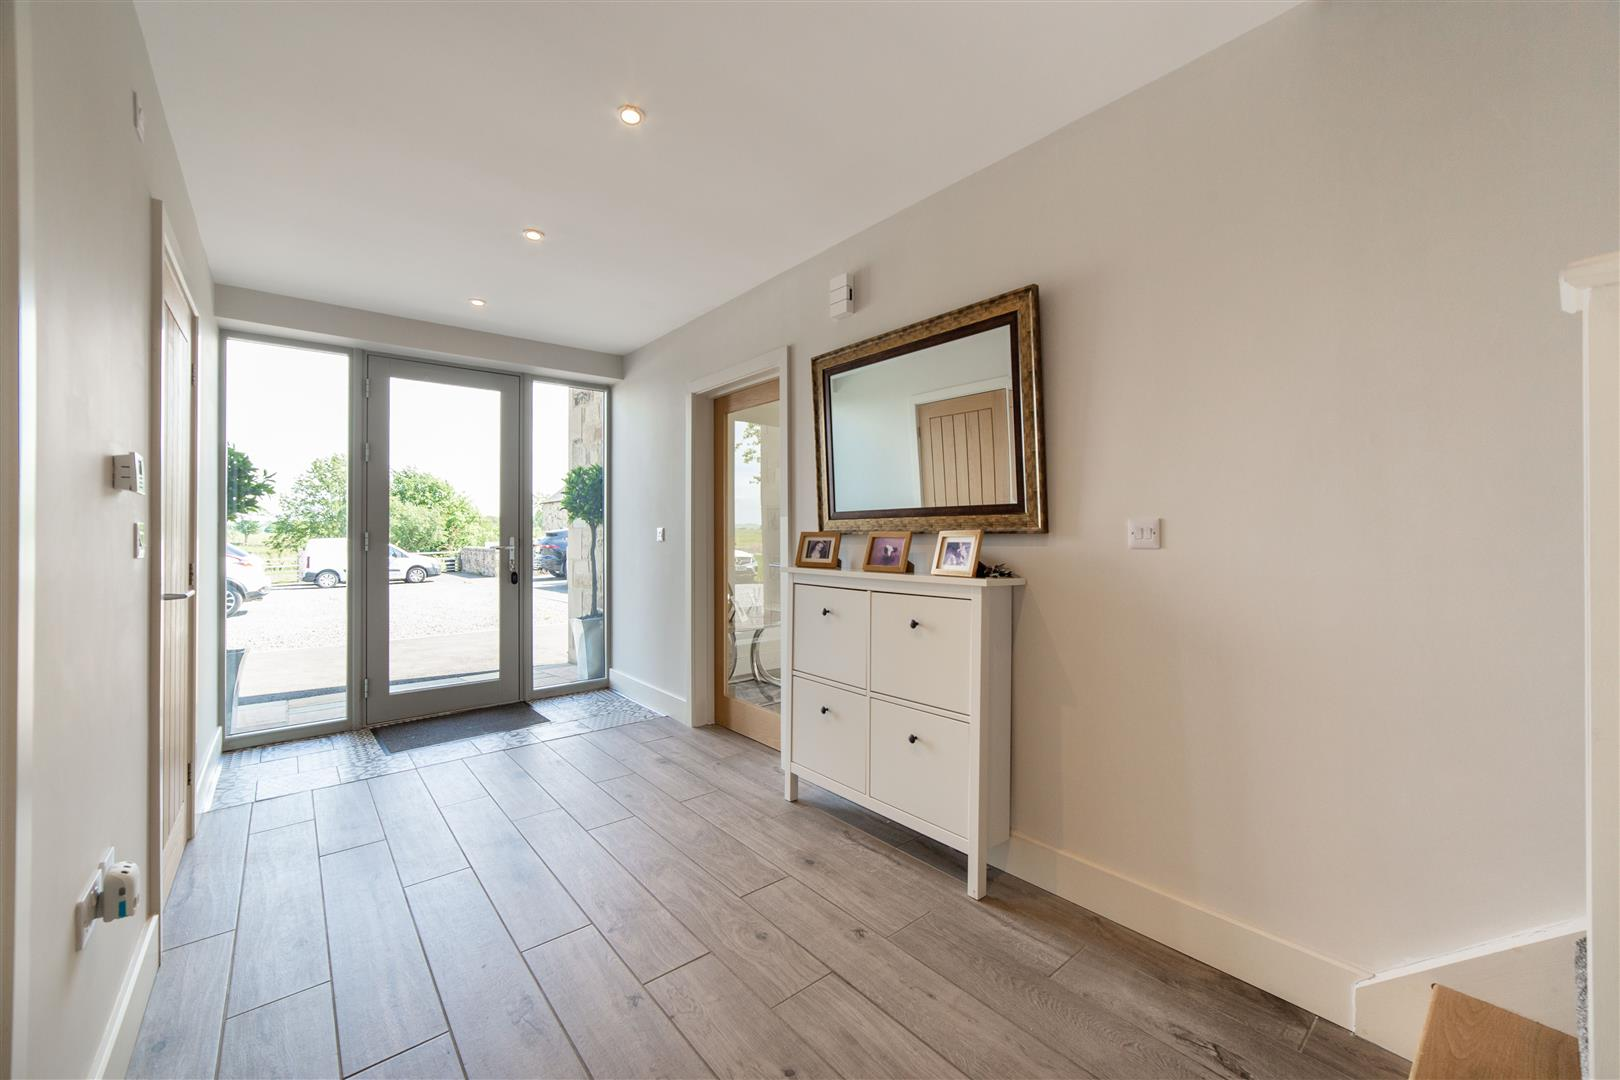 4 bed detached house for sale, Hexham  - Property Image 28